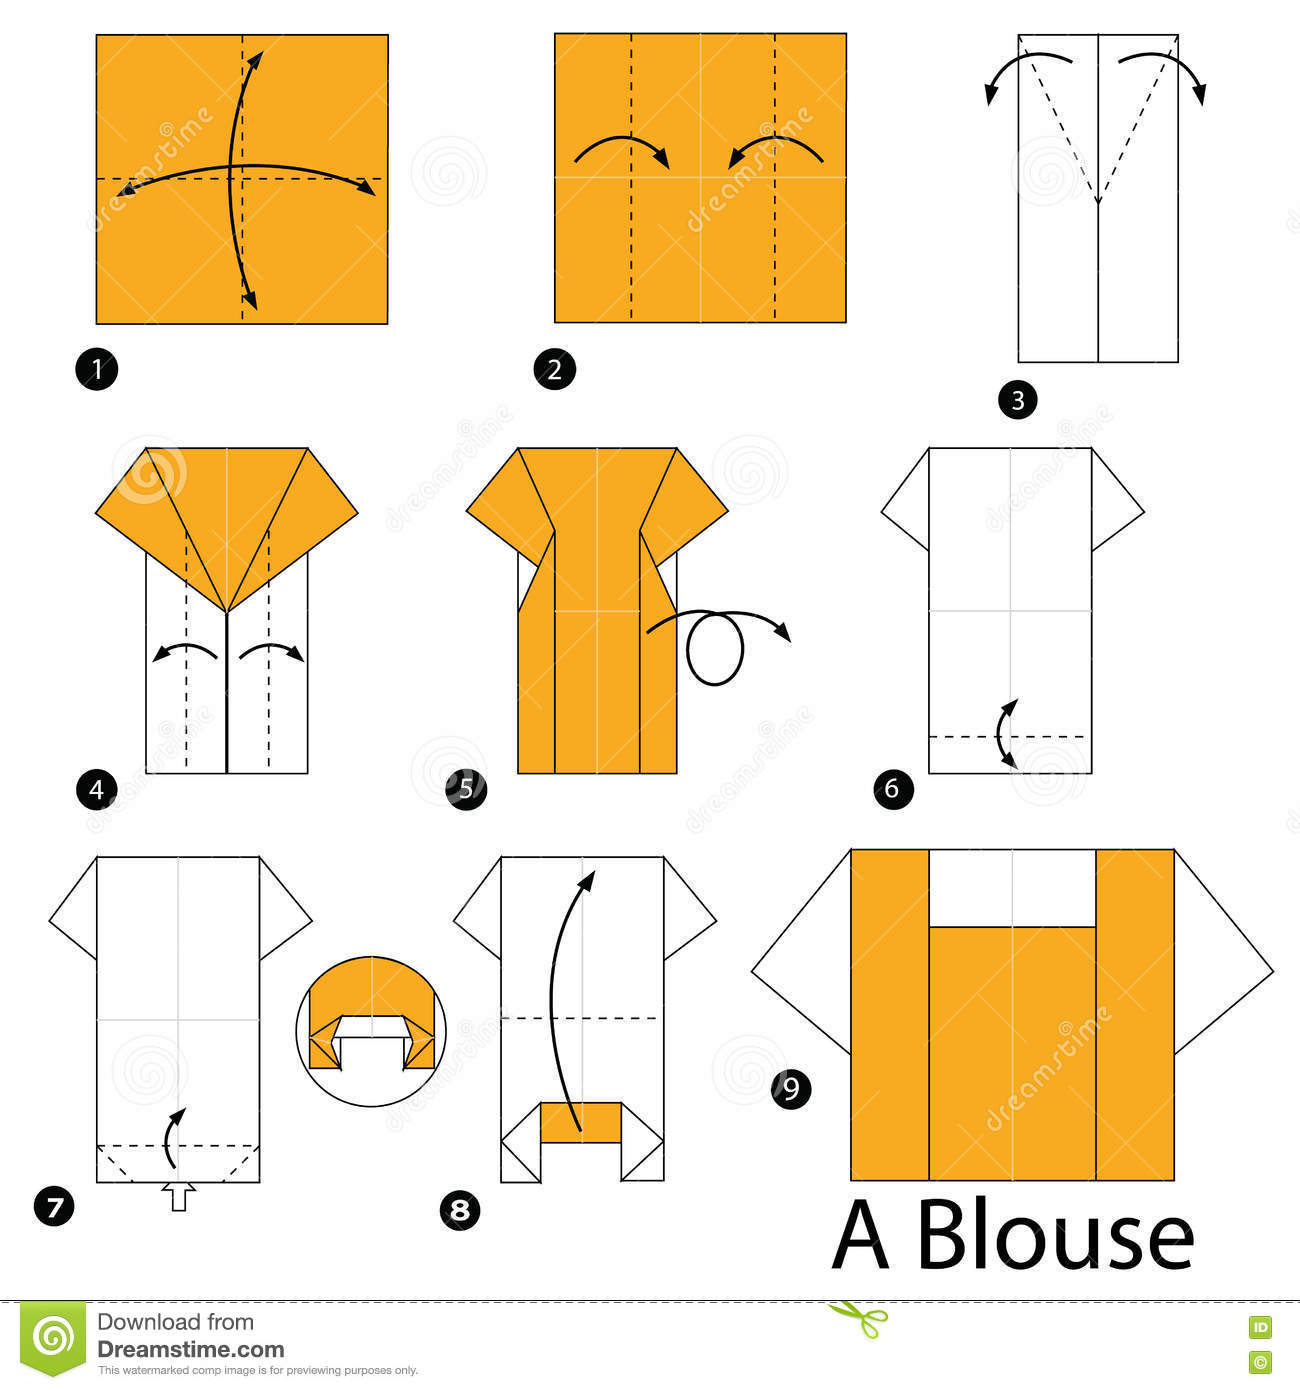 how to make paper shirts step by step tutorial